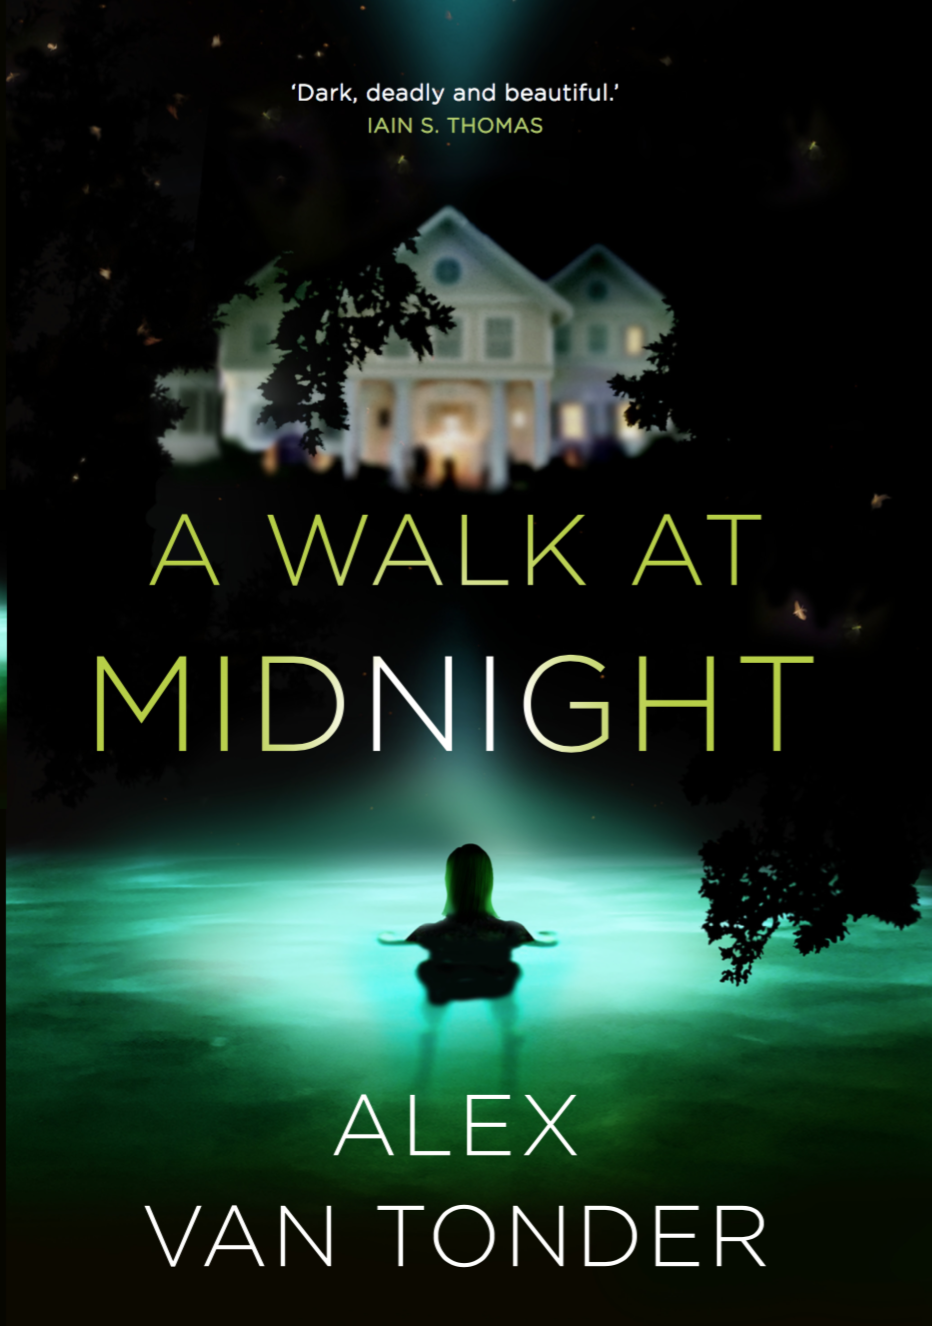 walkatmidnightcover.png